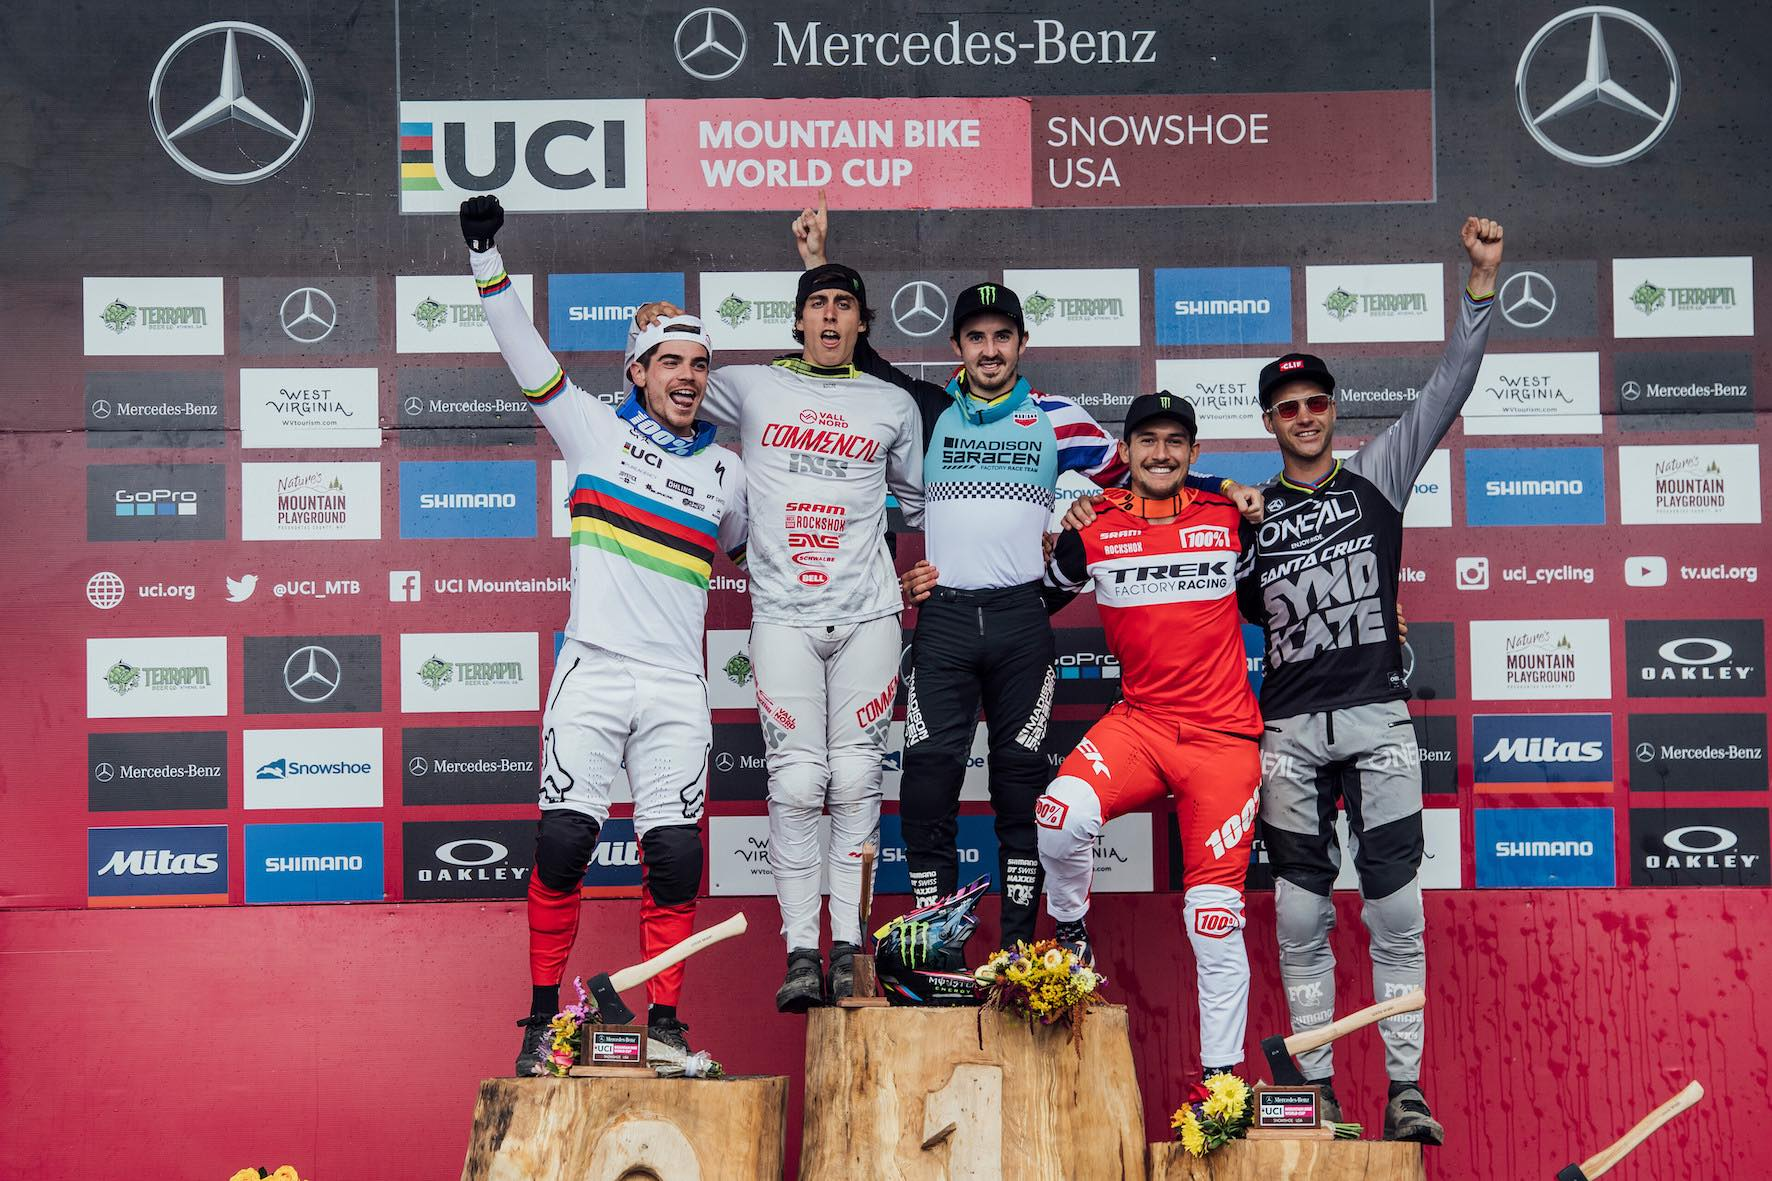 2019 UCI Downhill MTB World Cup Snowshoe Mens Podium